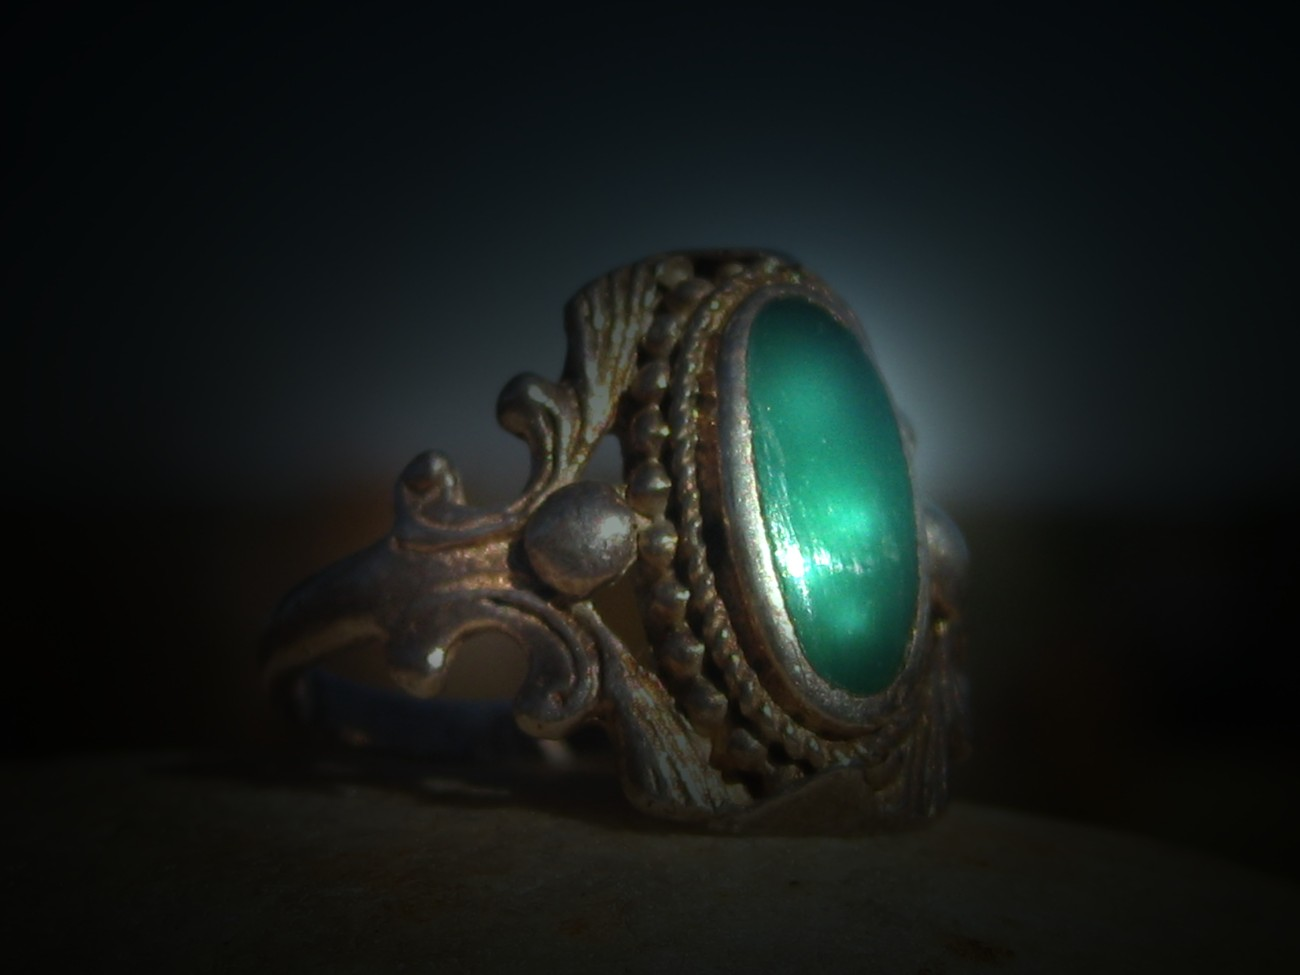 FOREVER YOUNG~FOREVER BEAUTIFUL RING FROM EBONY MANOR WITCH ESTATE!